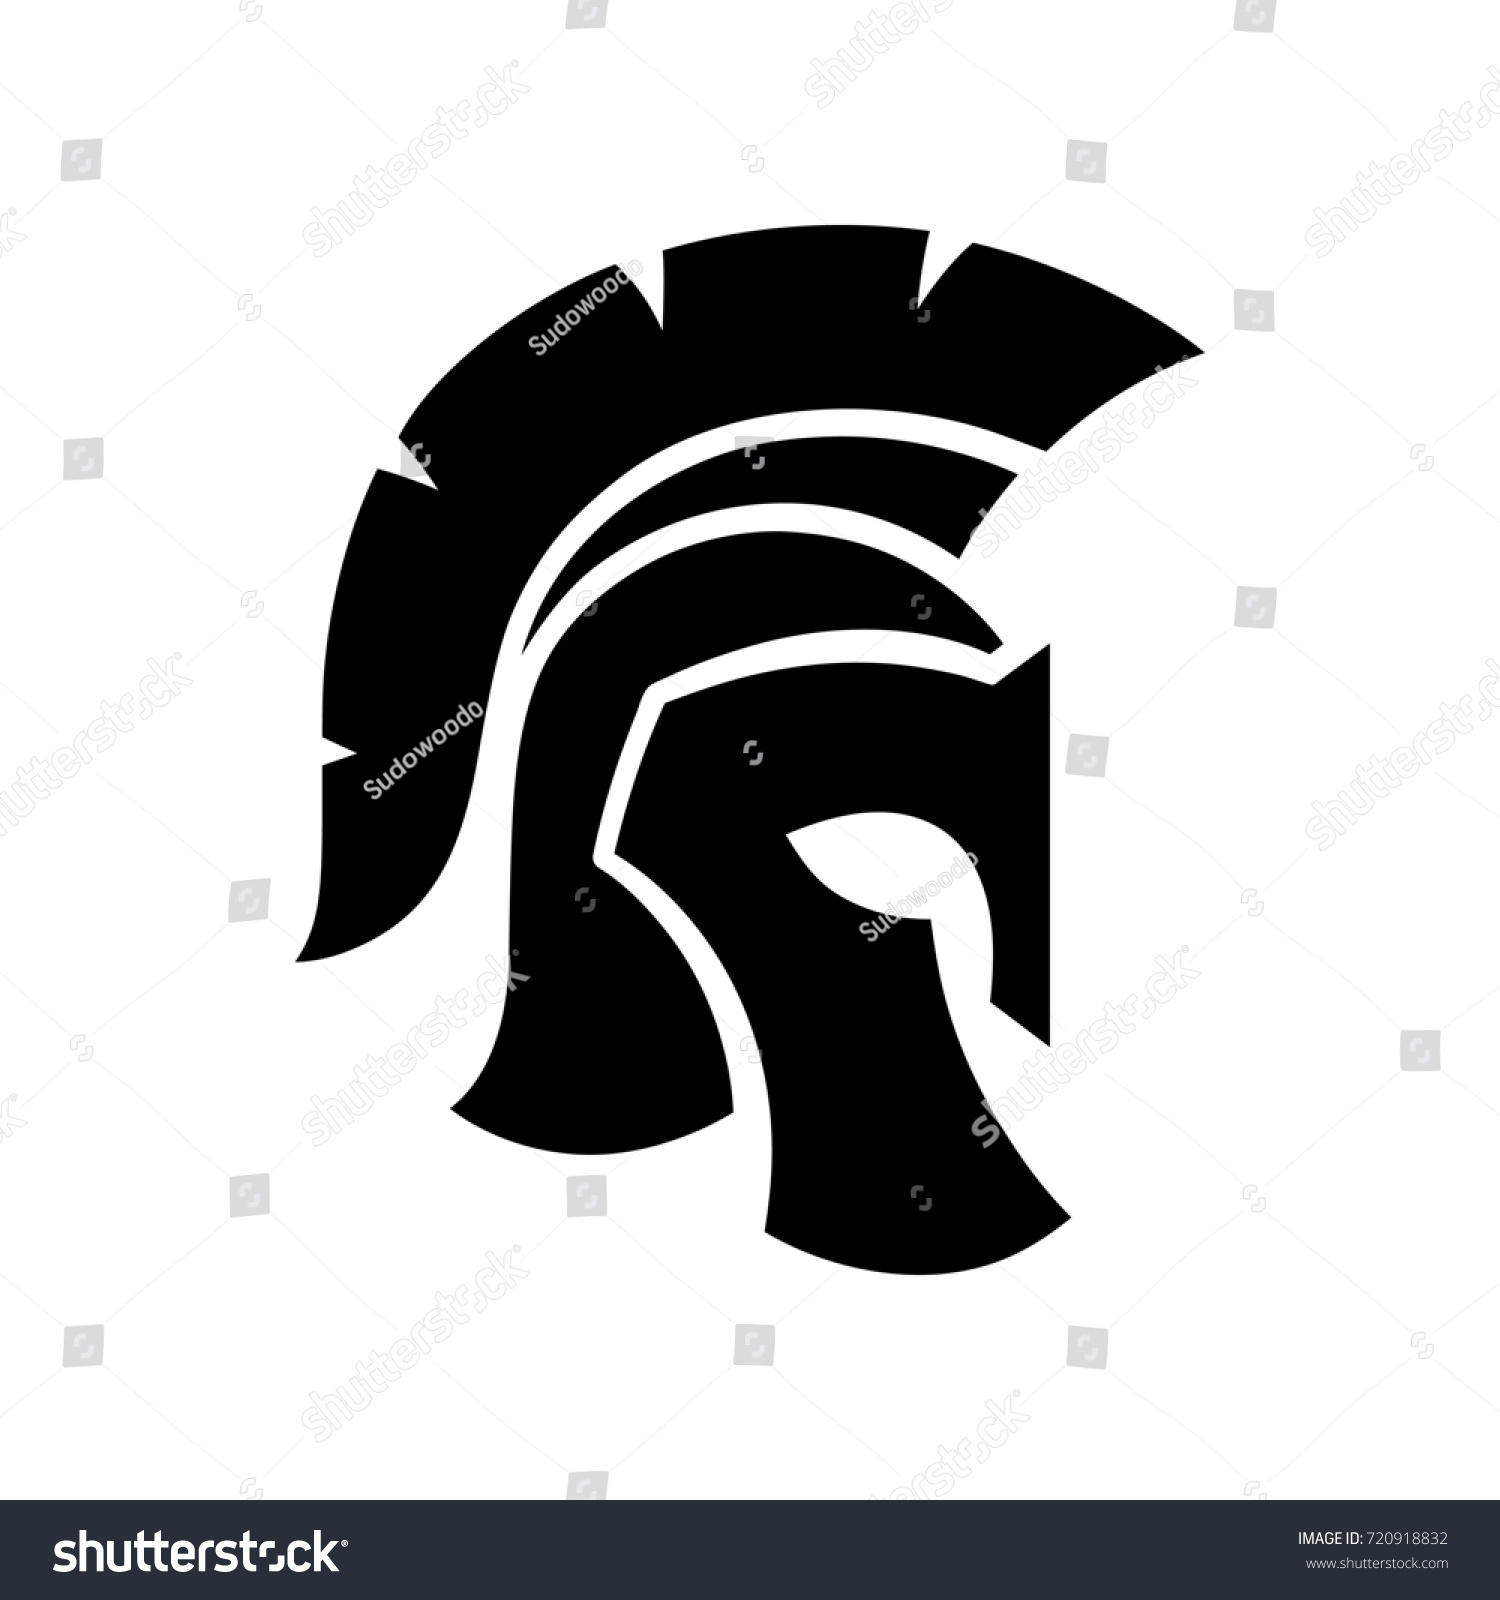 gladiator helmet silhouette icon greek romanのイラスト素材 720918832